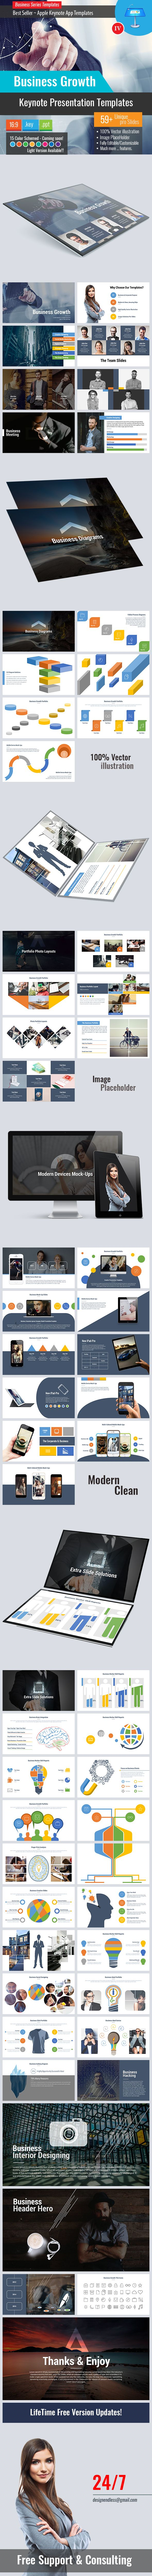 Business Growth - Modern Trending Template #design #slides Download: http://graphicriver.net/item/business-growth-modern-trending-template/13750554?ref=ksioks